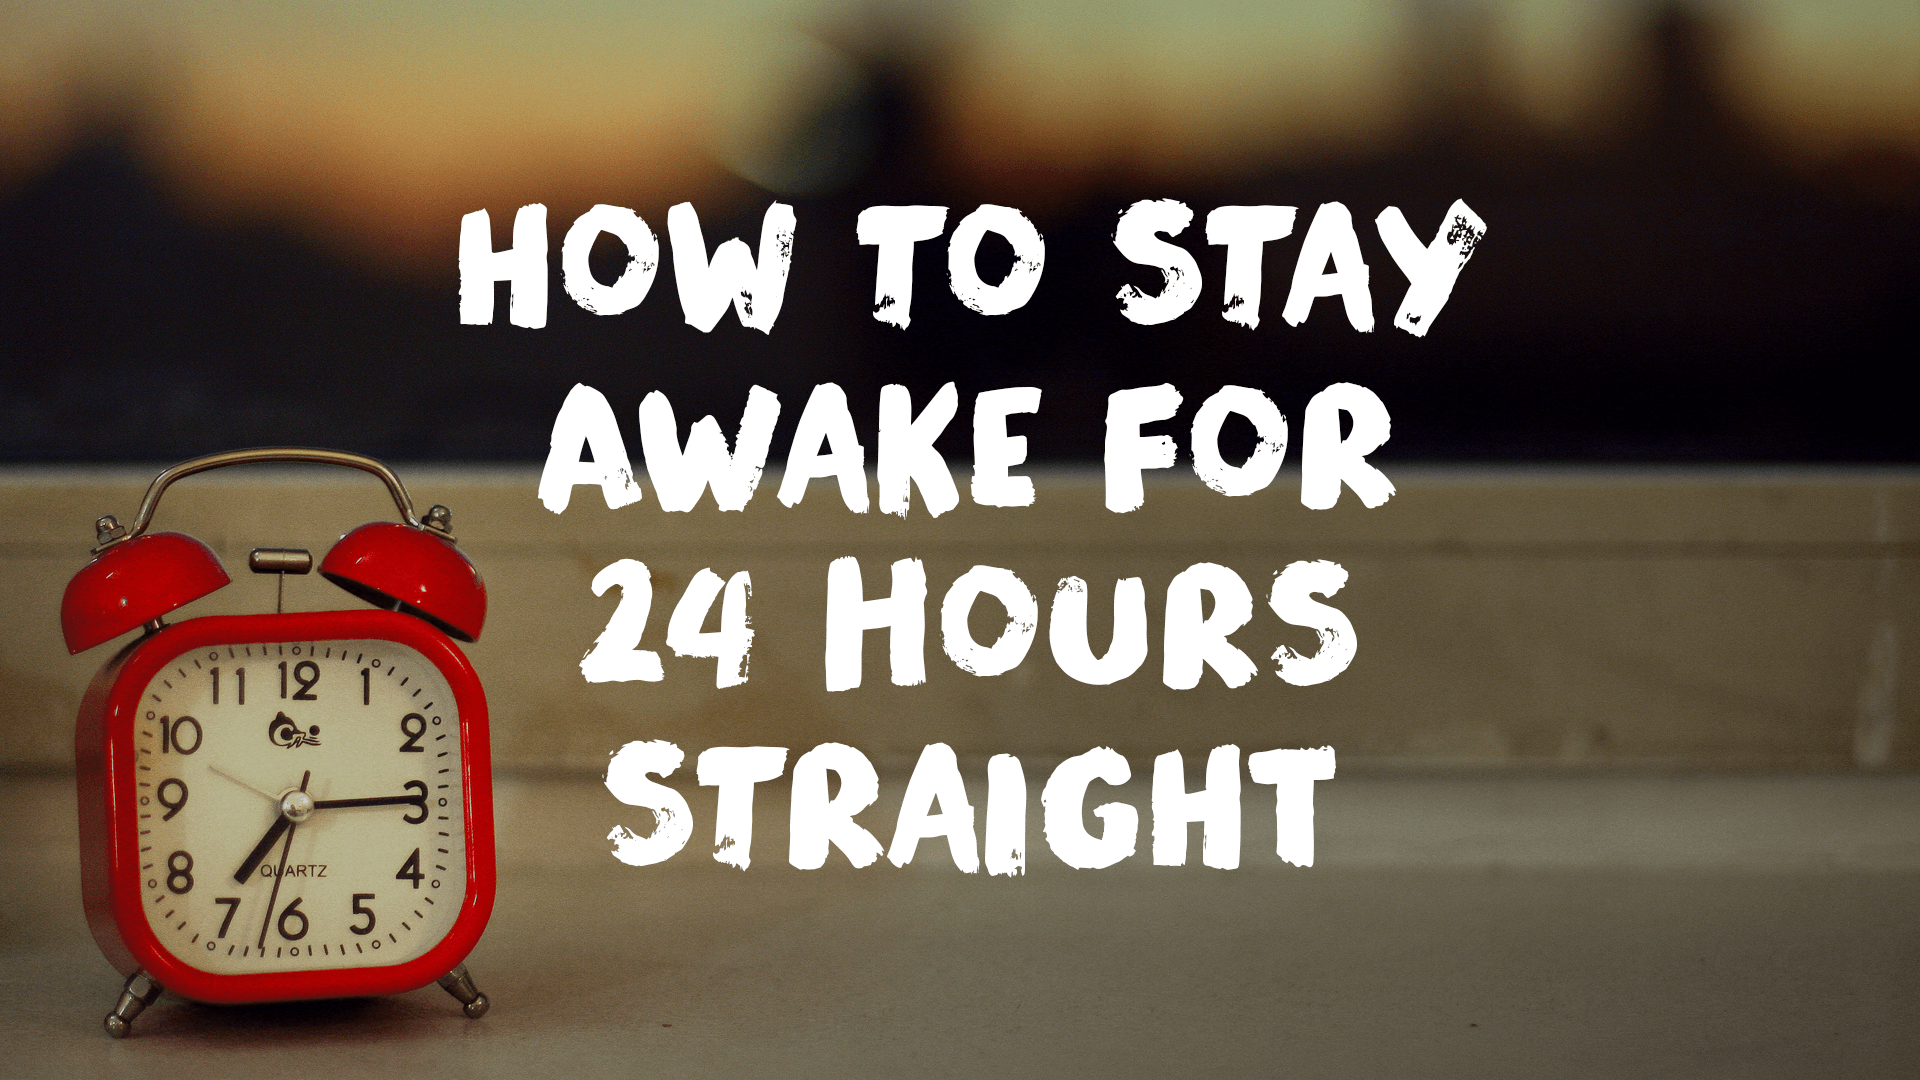 how to stay awake for 24 hours straight the second city how to stay awake for 24 hours straight